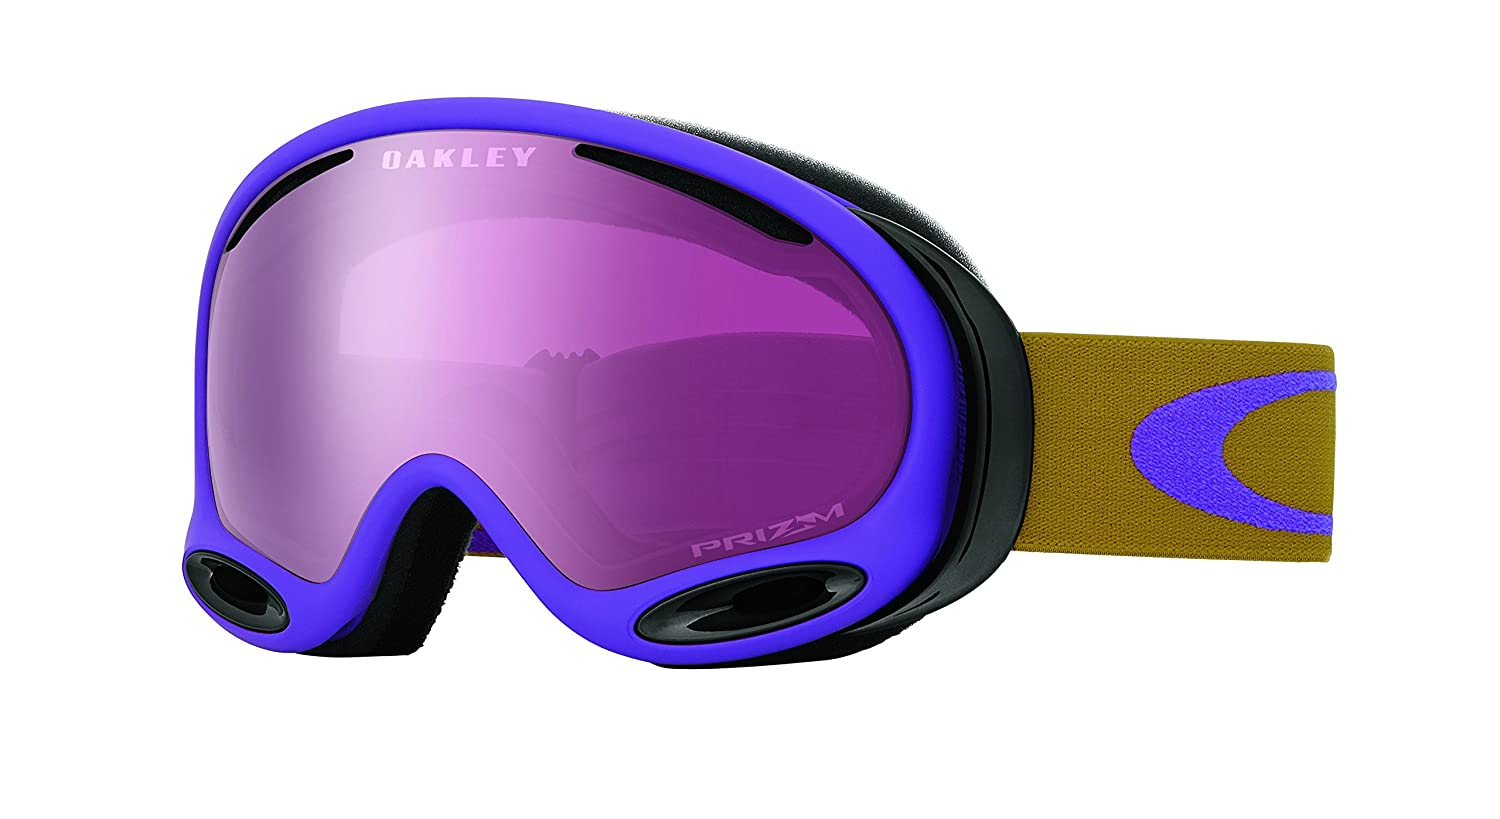 354acf90e2 Amazon.com   Oakley A Frame 2.0 Adult Goggles - Burnished Purple Prizm  Rose One Size   Sports   Outdoors